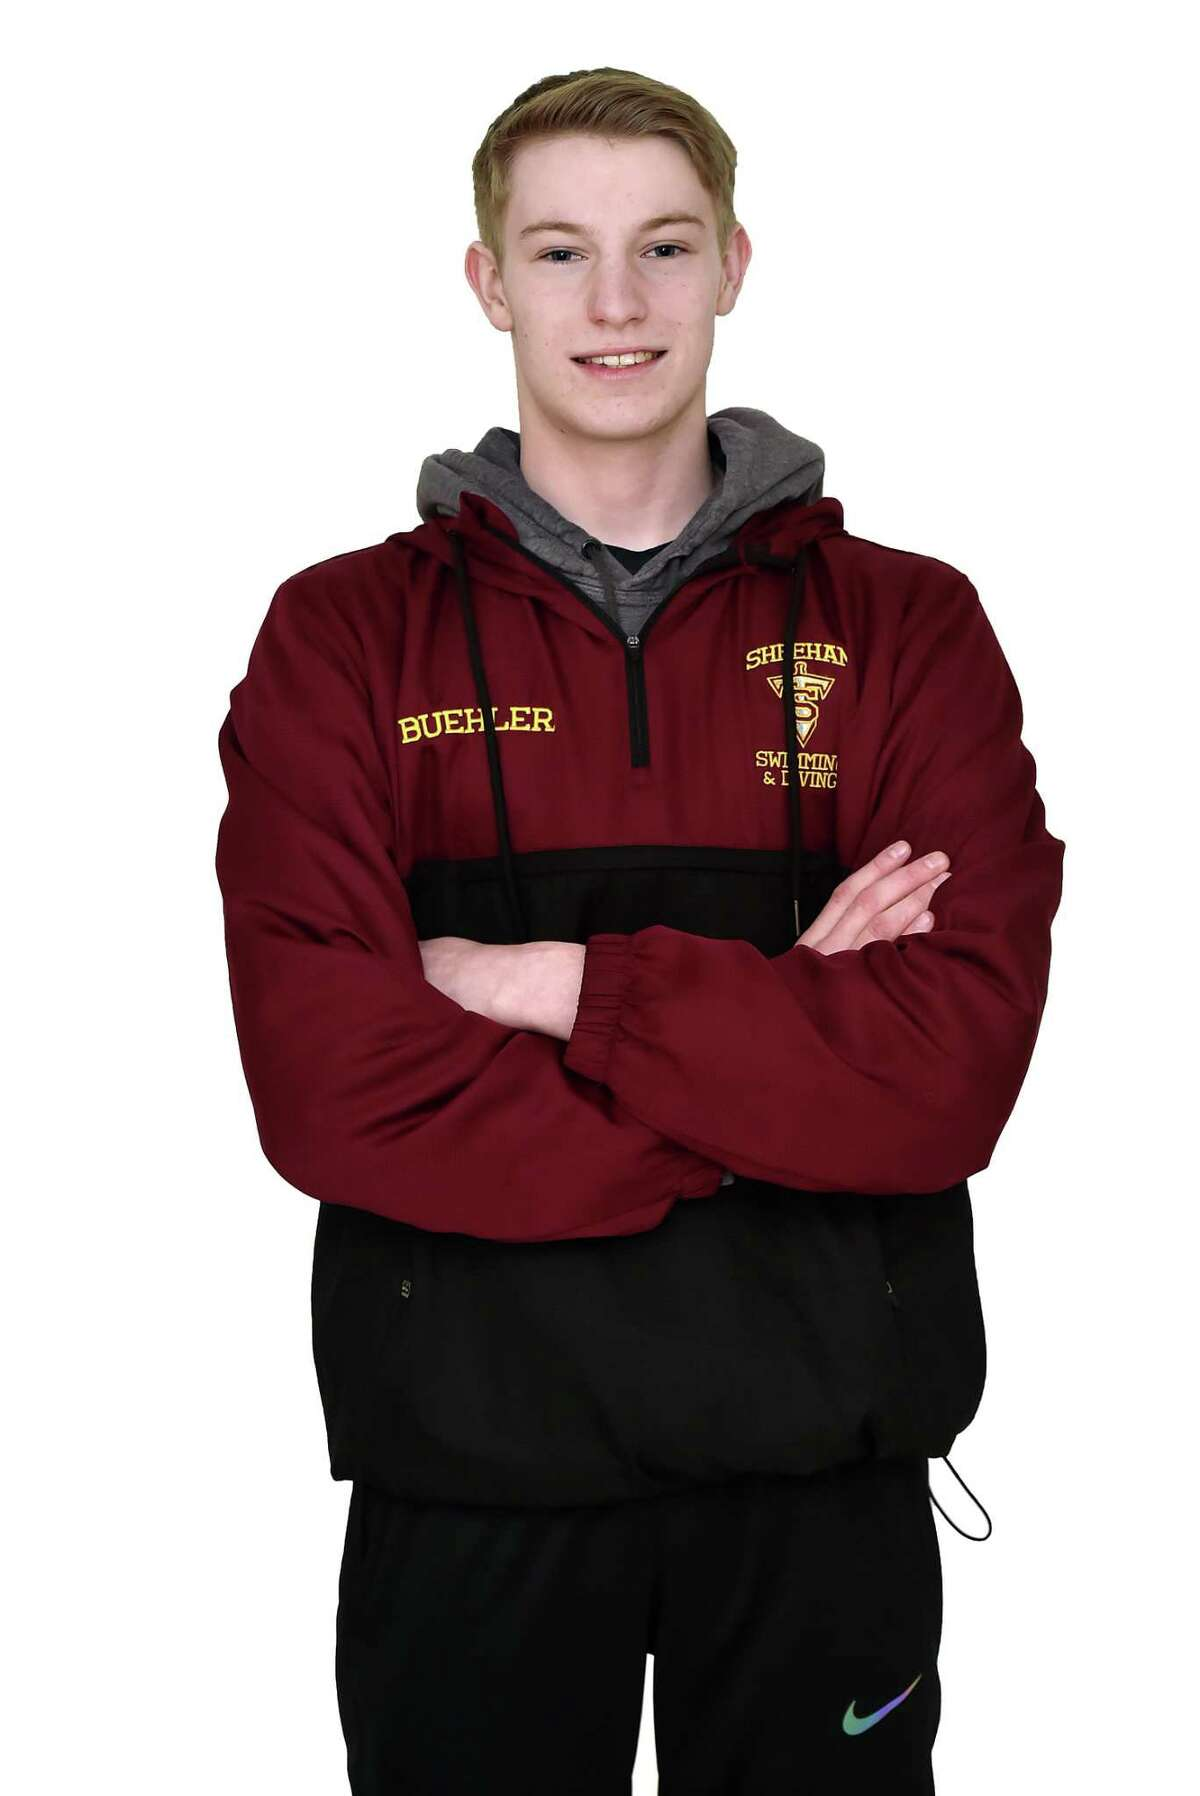 Andrew Buehler Sheehan High School All-Area Swimming April 5, 2018